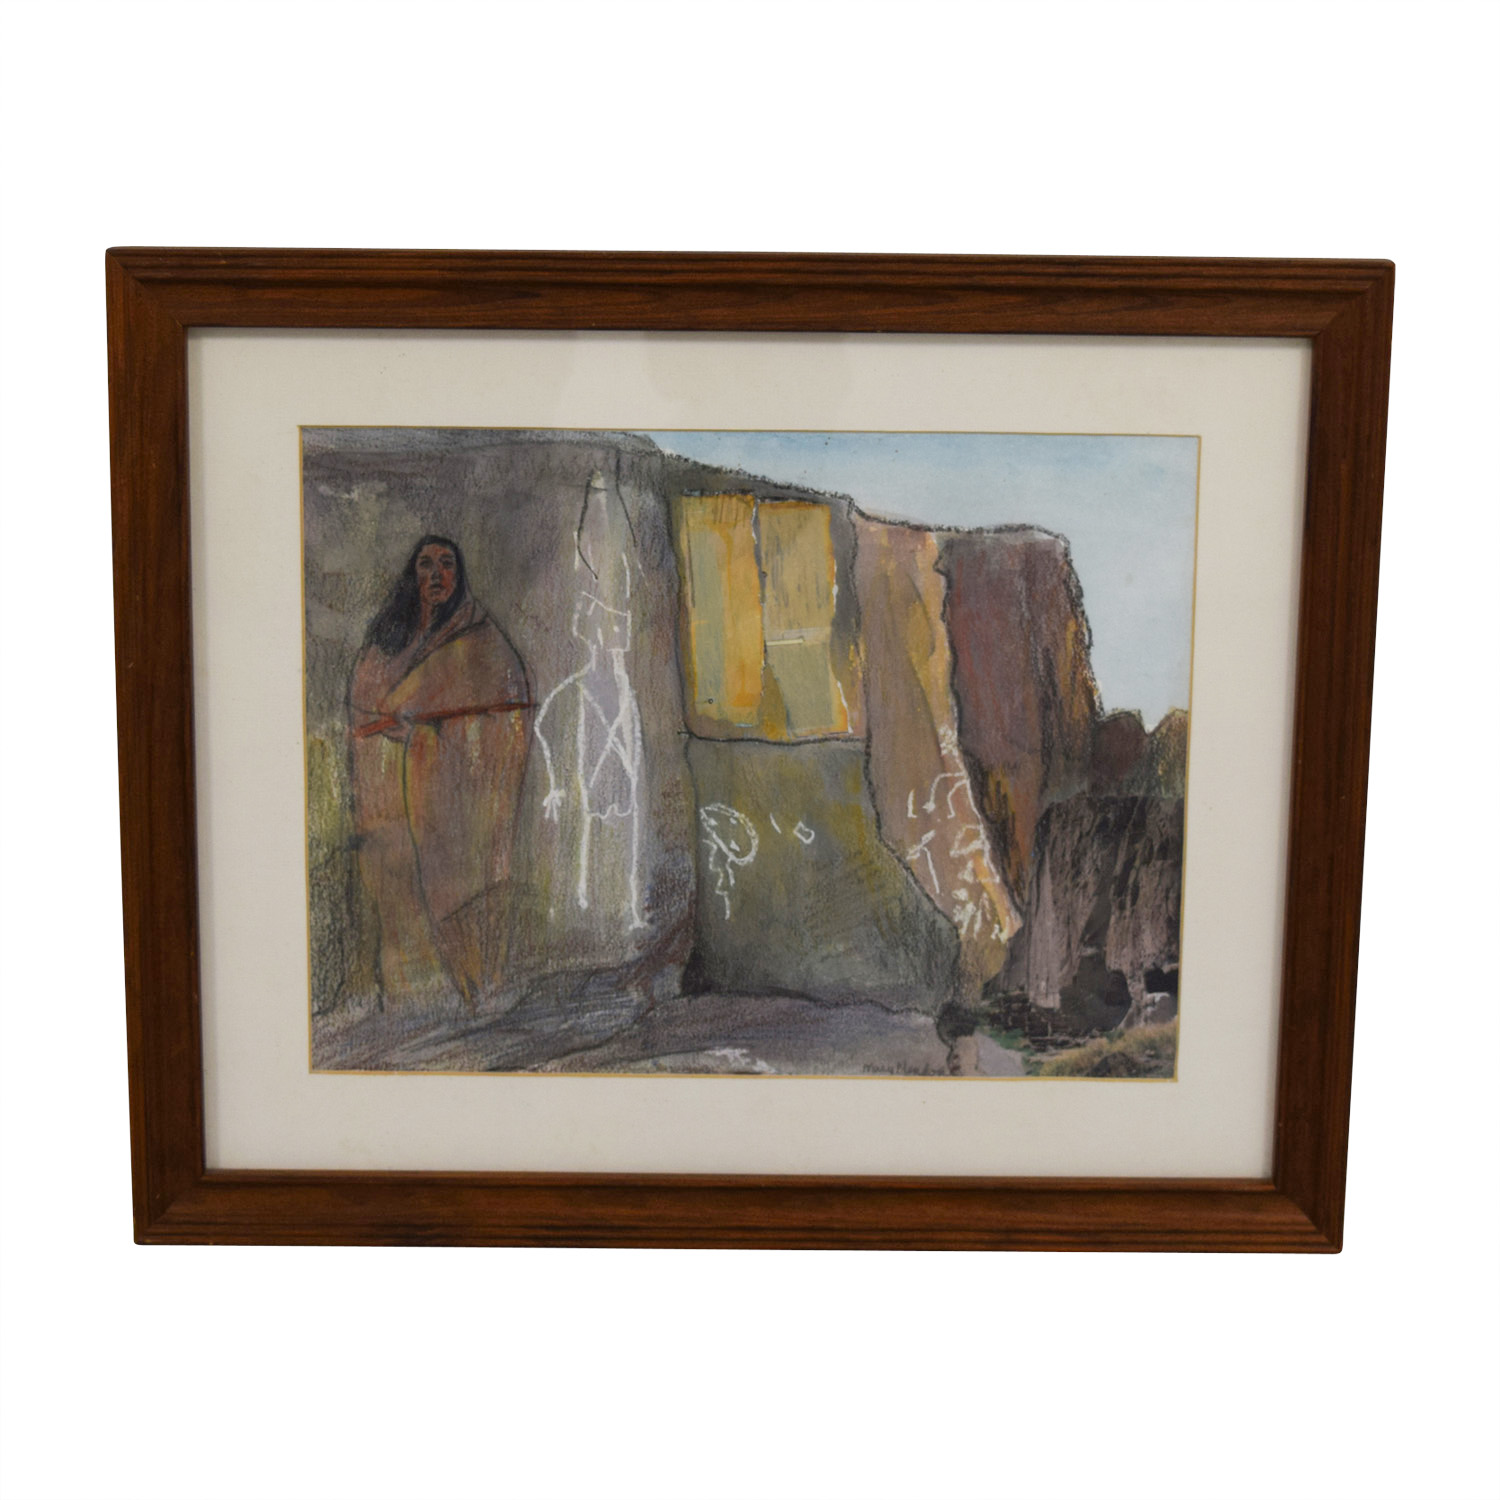 buy Framed Stone Wall Painting online